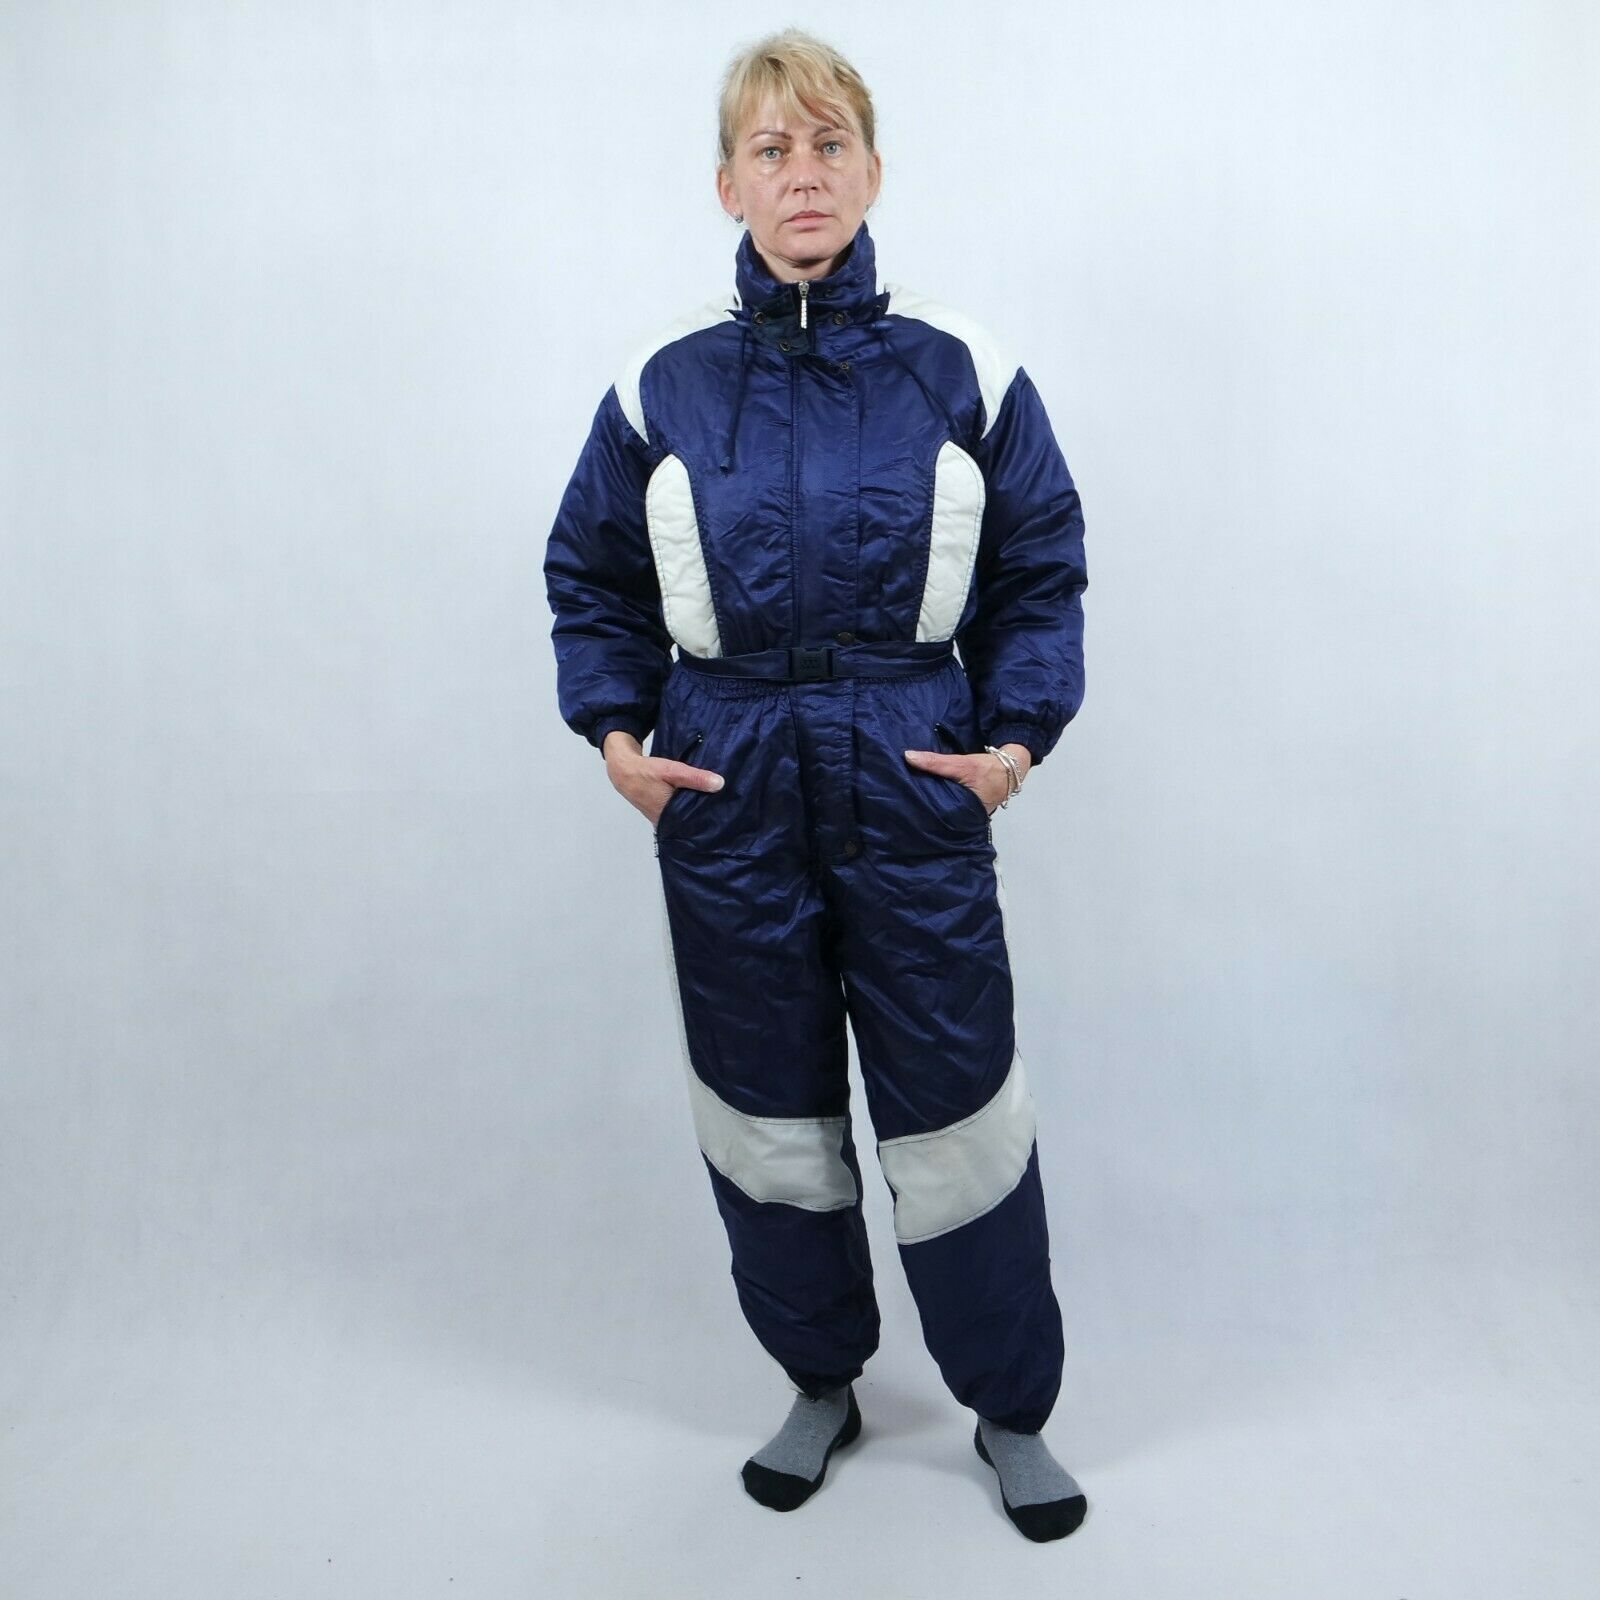 Vintage Womens  Dark bluee Shiny Festival One Piece Ski Suit Snowsuit SIZE Small  brand on sale clearance